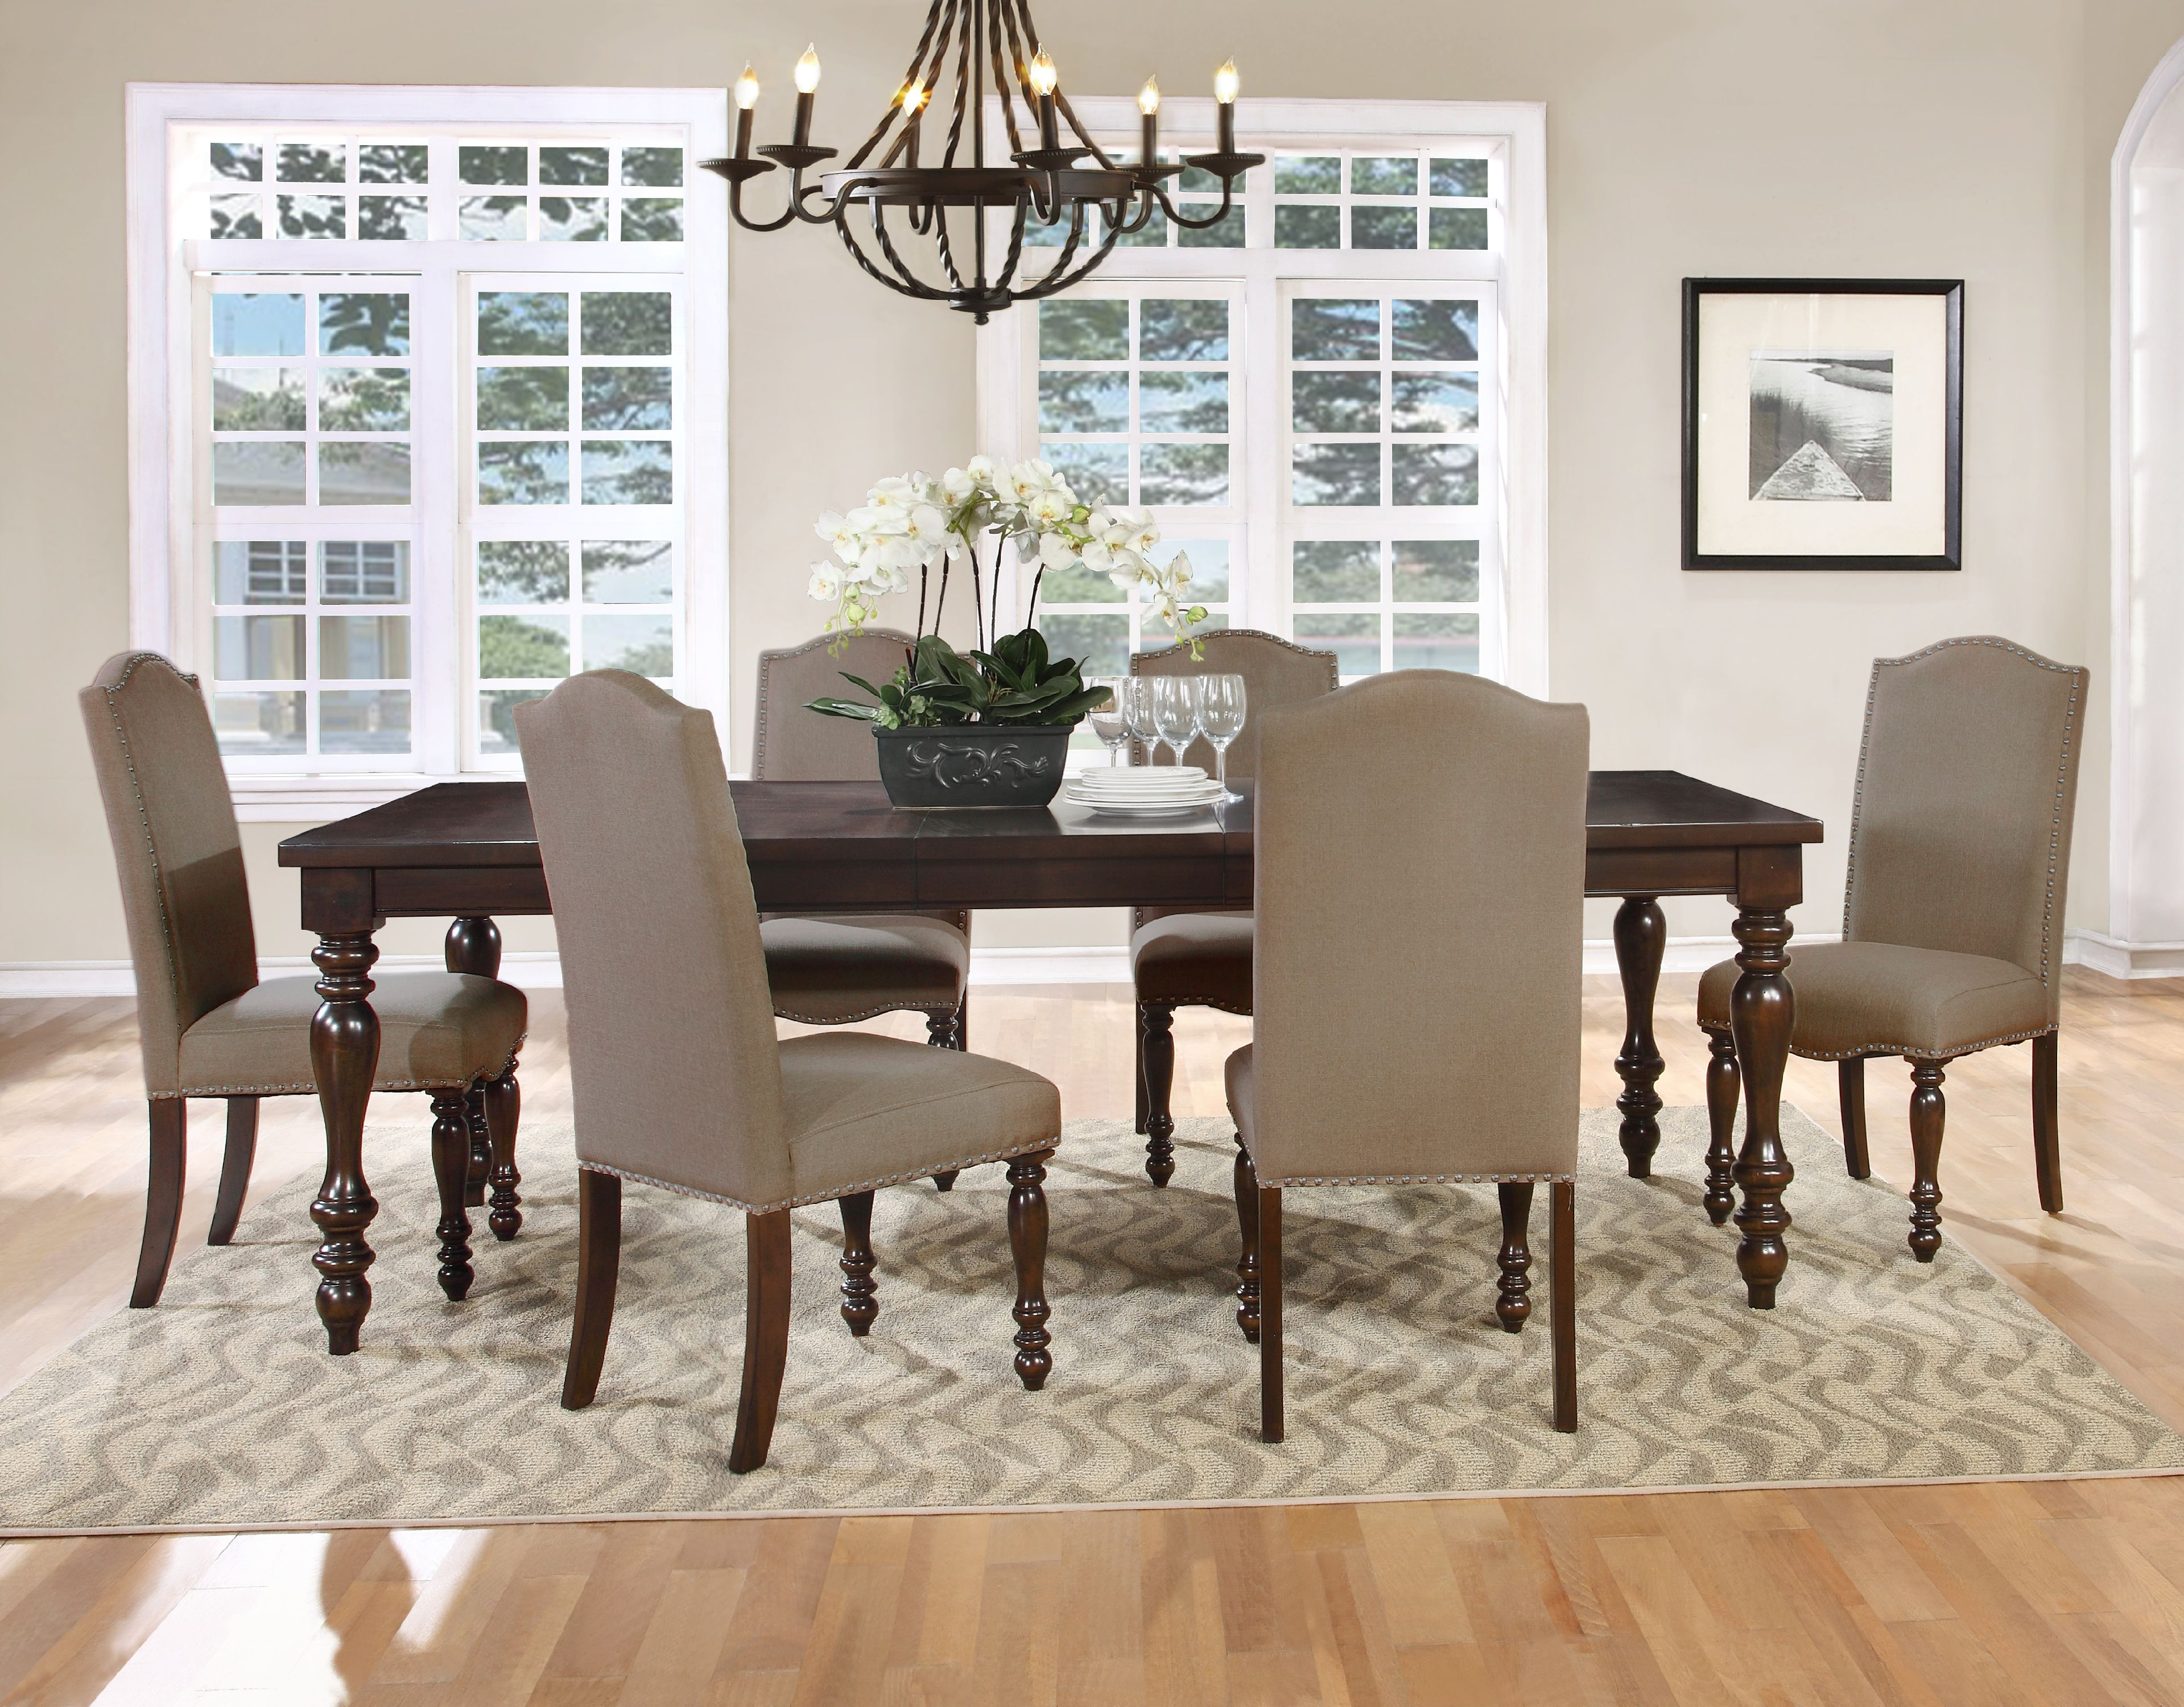 Best Master Furniture 5 Pcs Mc Gregor Dining Room Set with Table Extension by Best Master Furniture